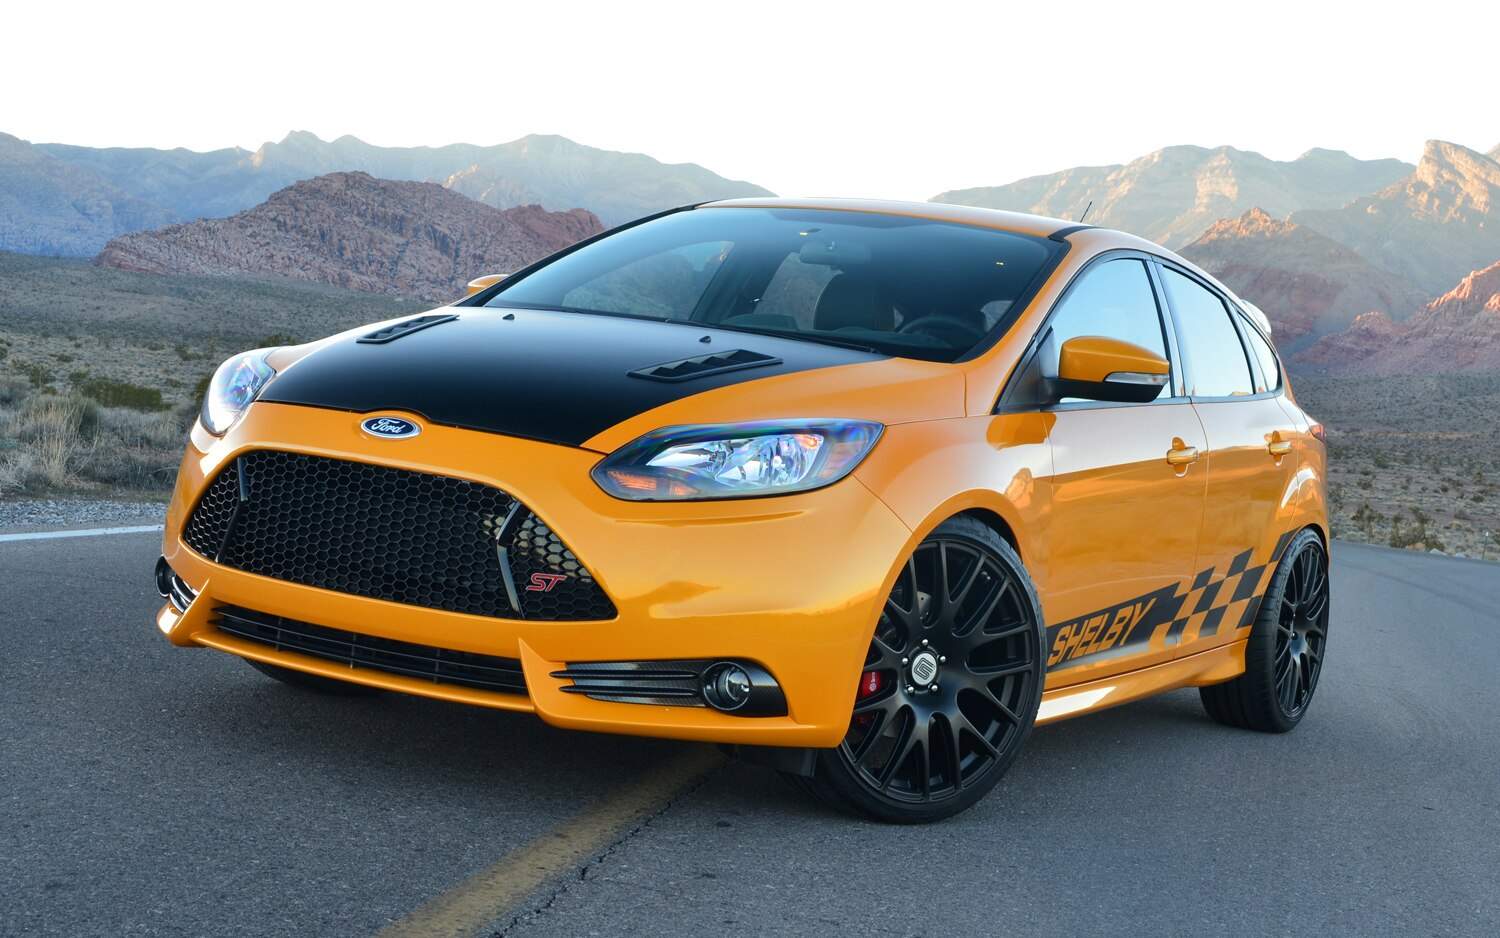 2013 Shelby Focus ST Front1